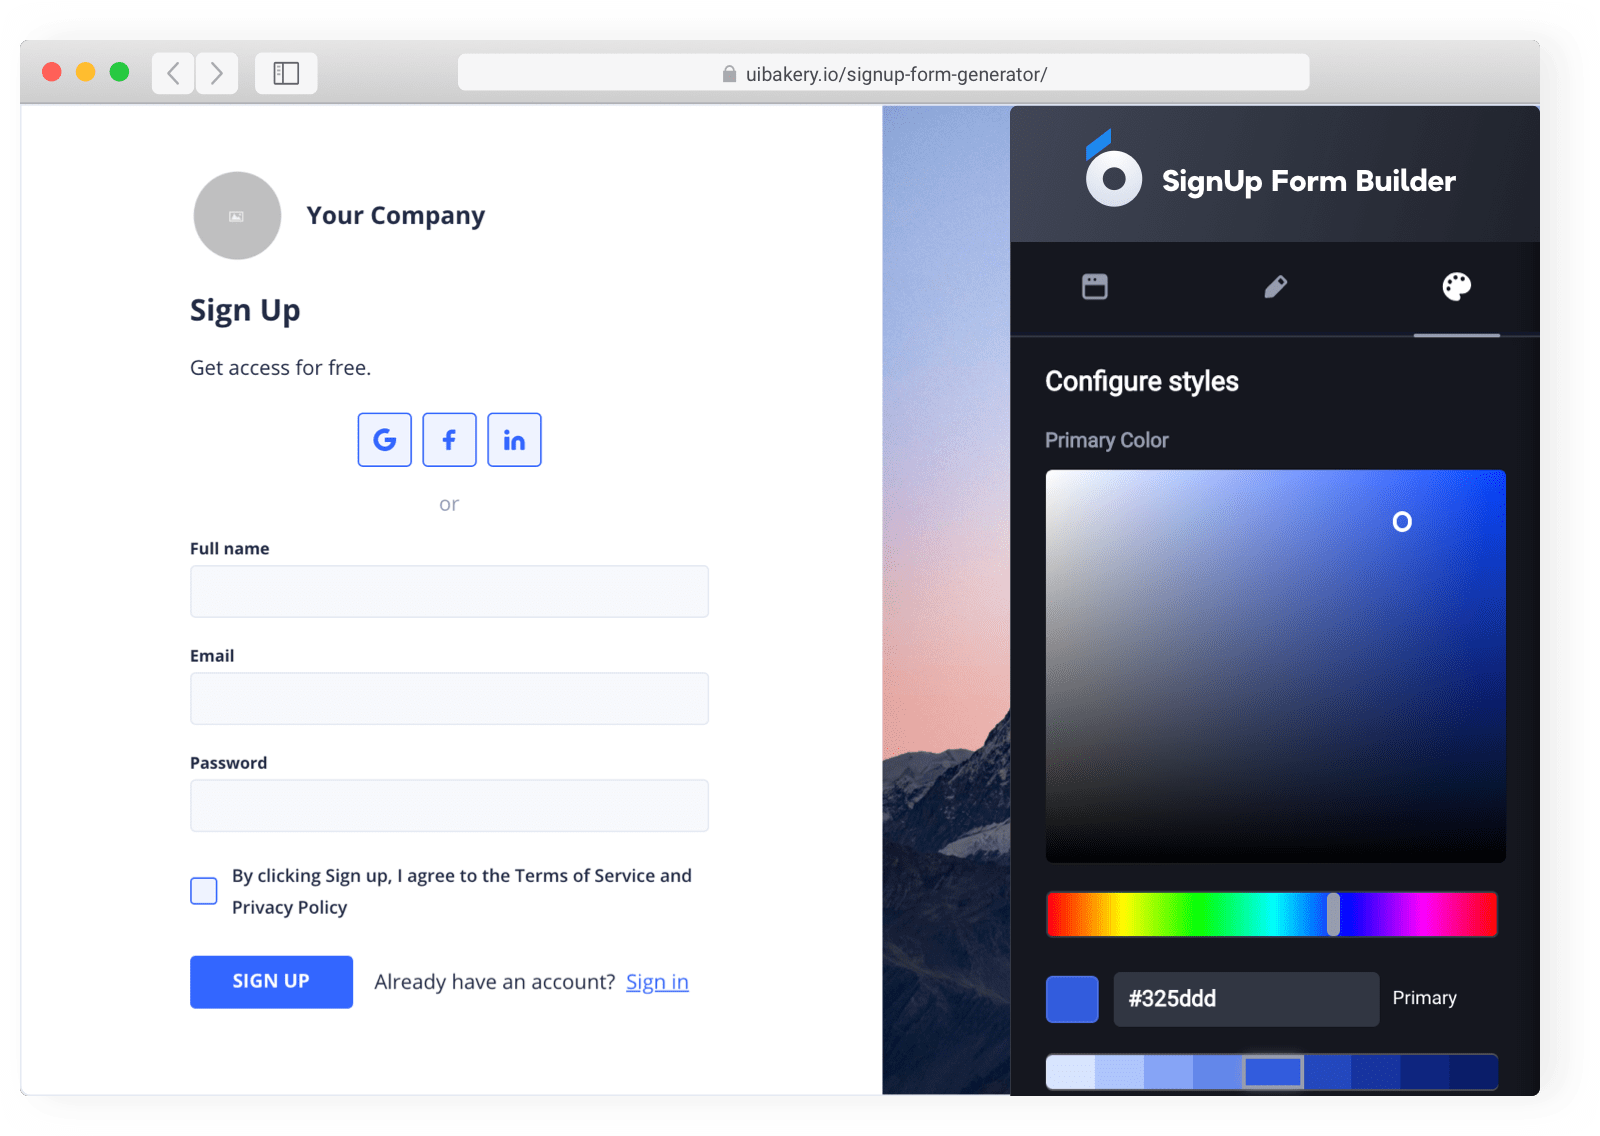 Sign up form builder, or login page creator without coding